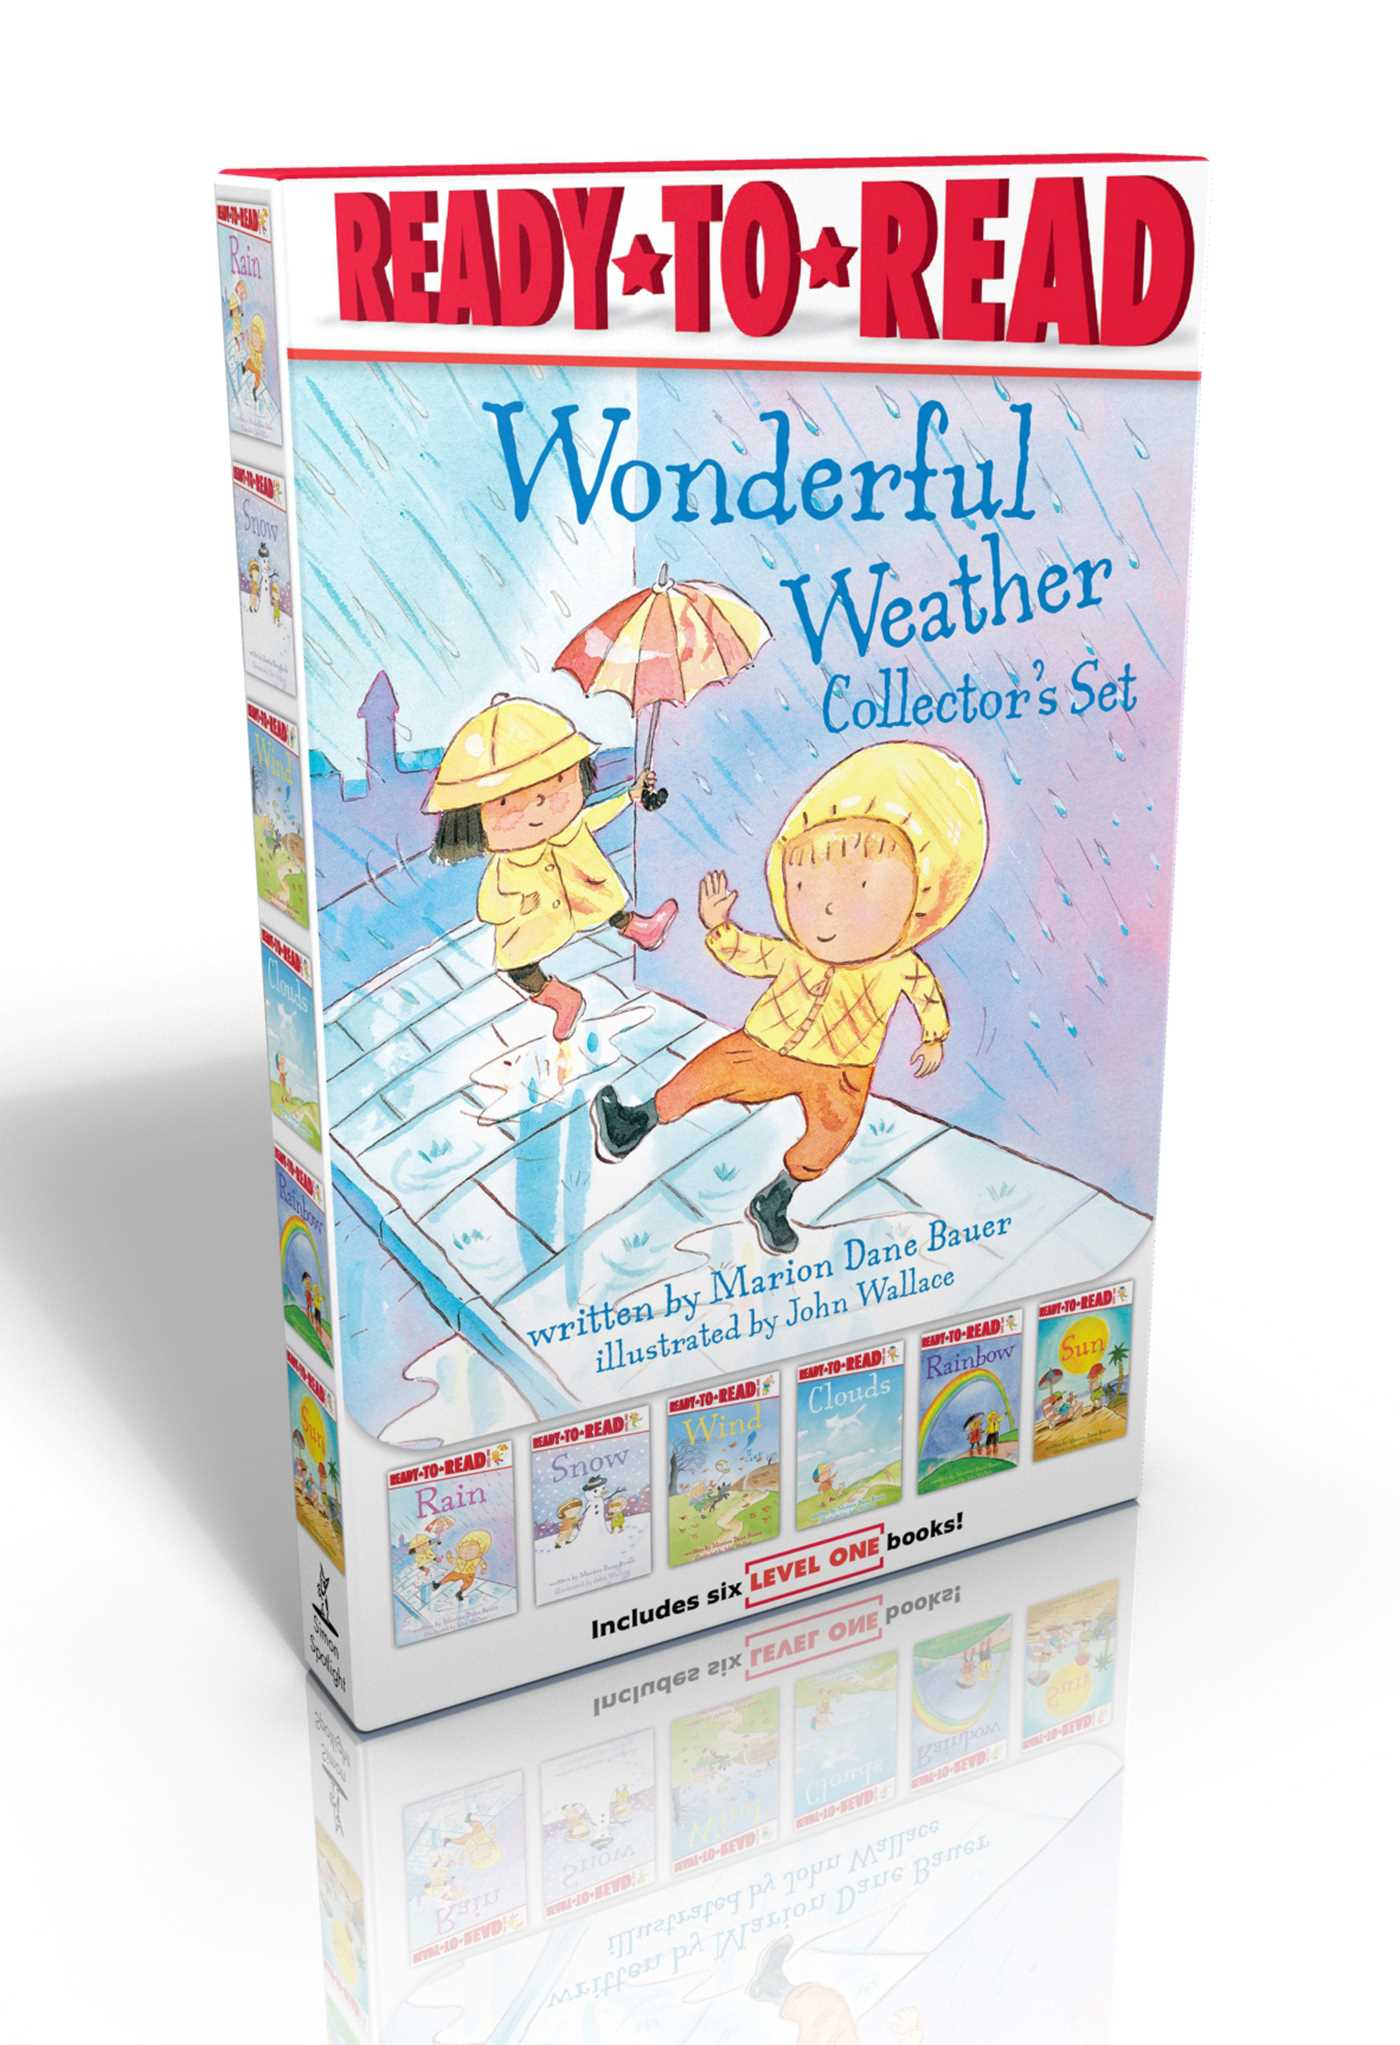 The wonderful weather collectors set 9781481466943 hr